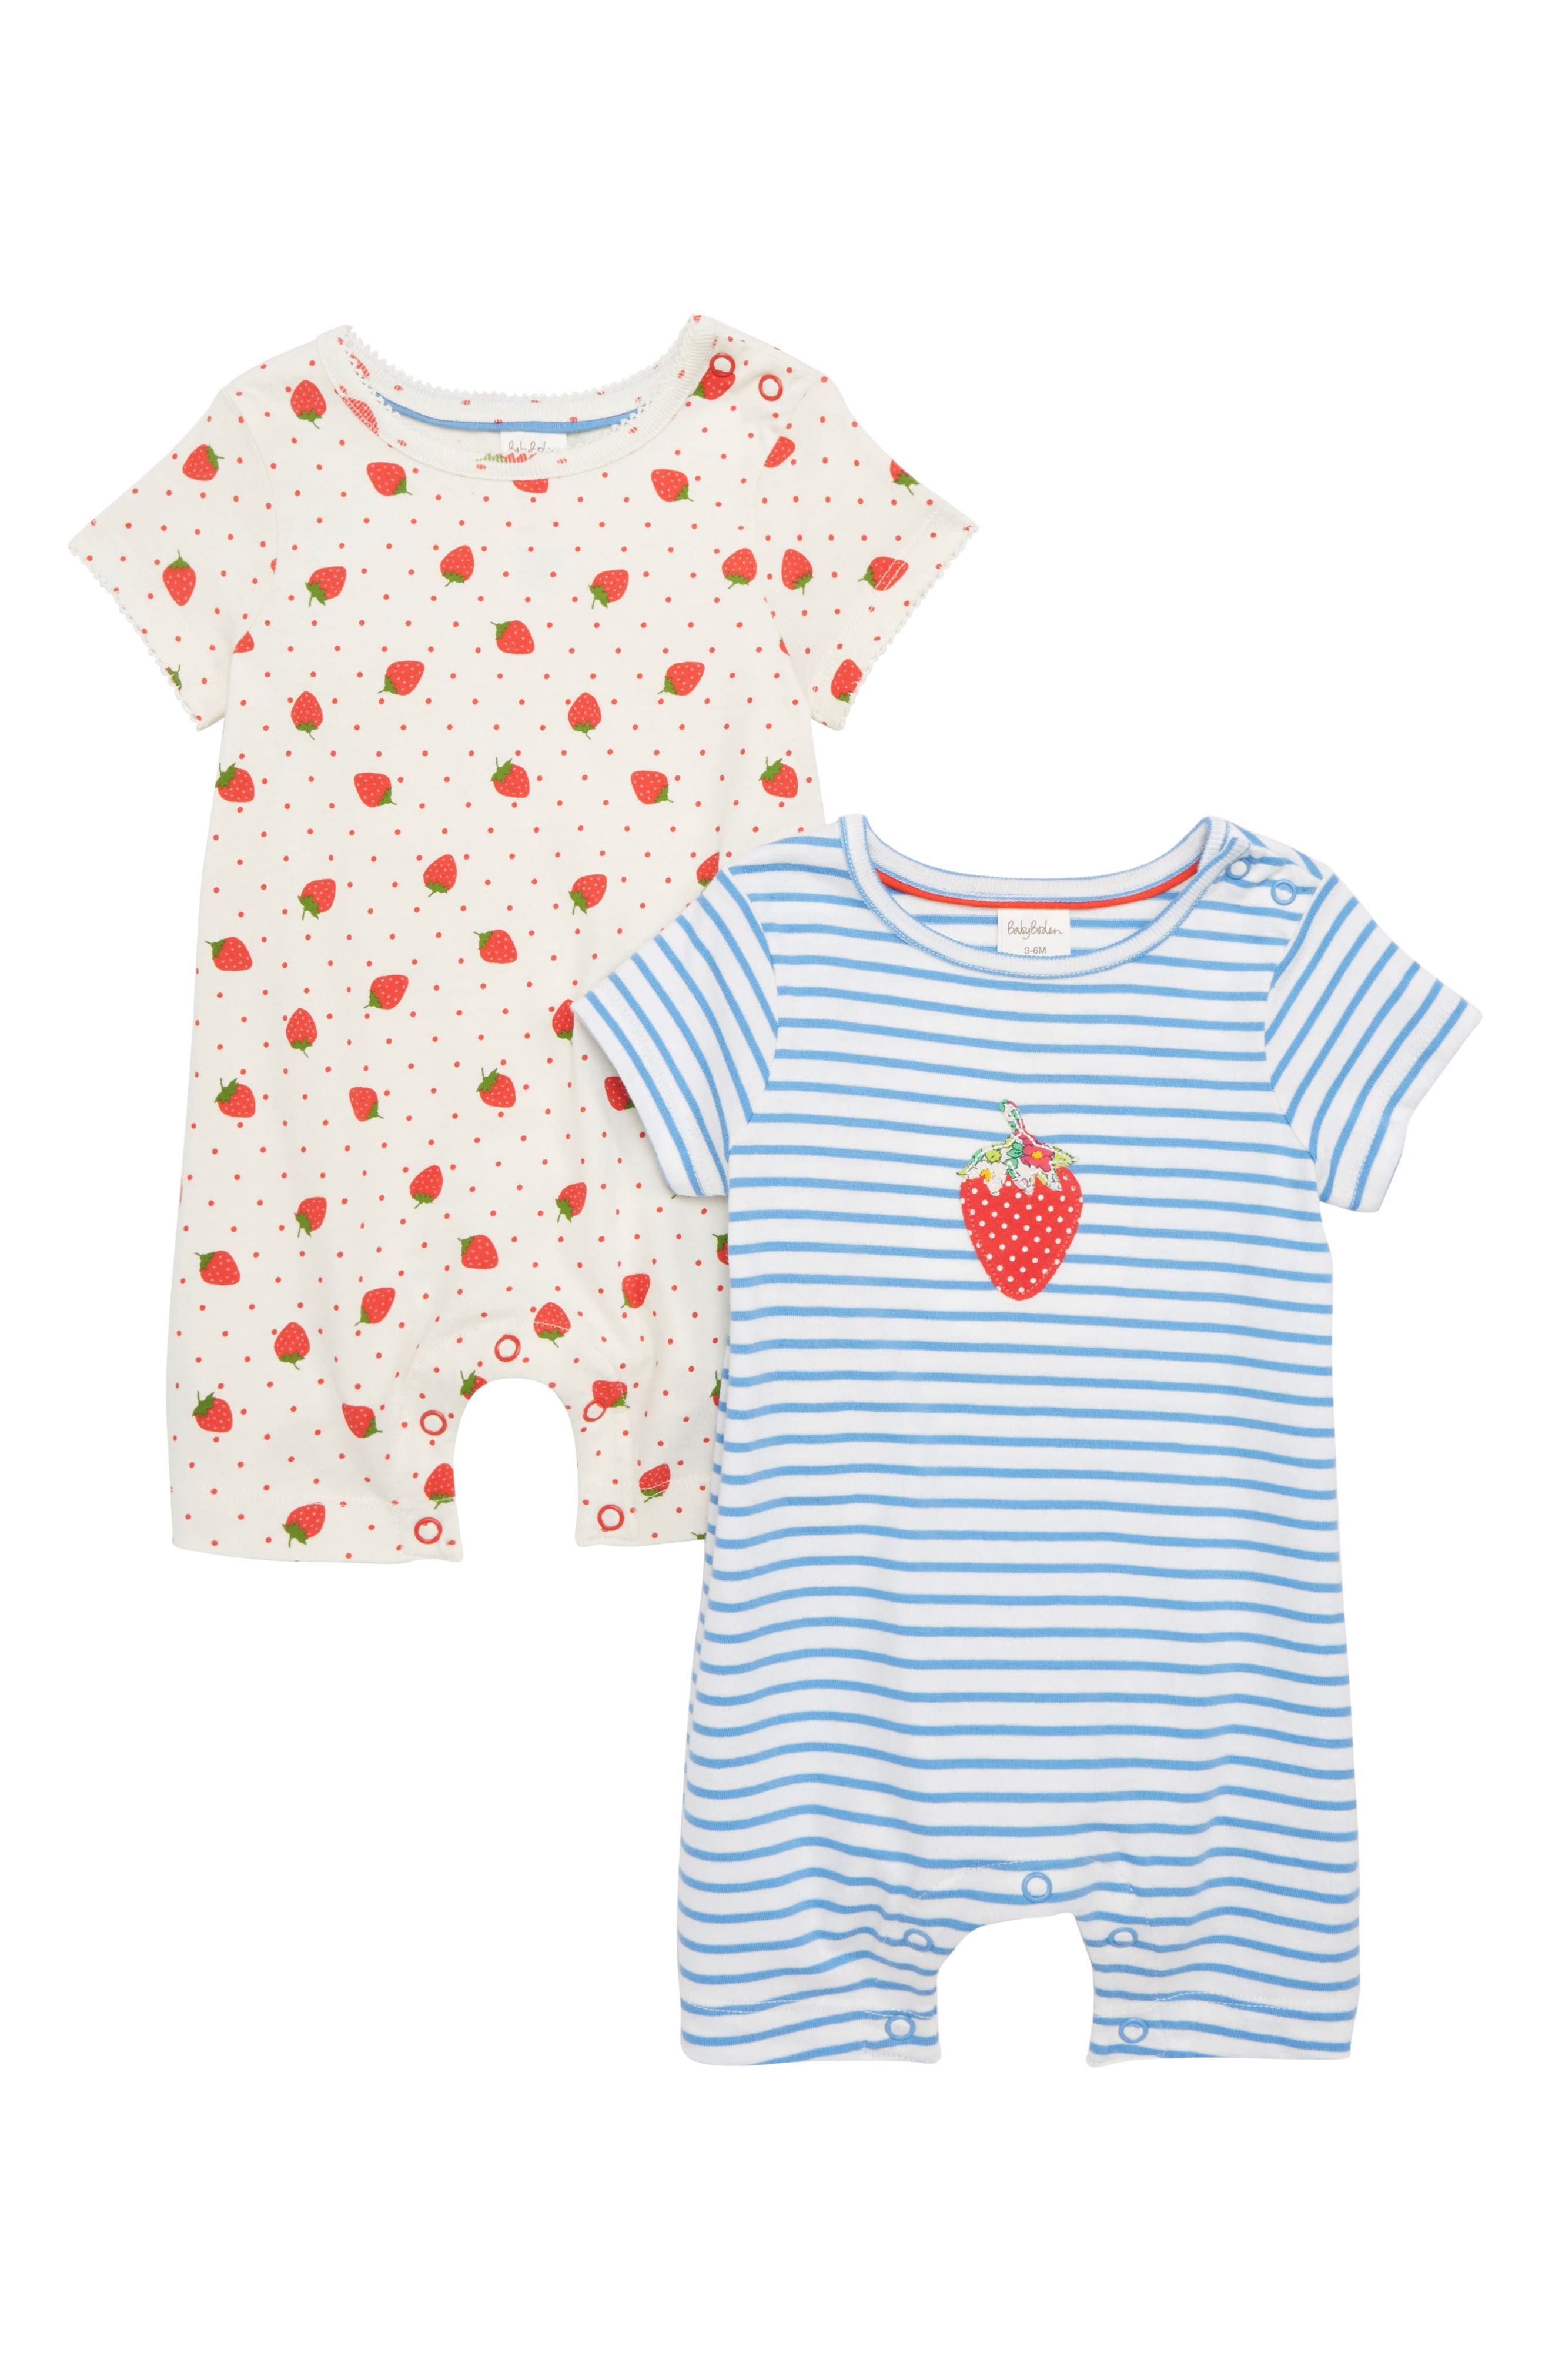 Summer 2-Pack Rompers,                         Main,                         color, Rosehip/ Red Strawberry